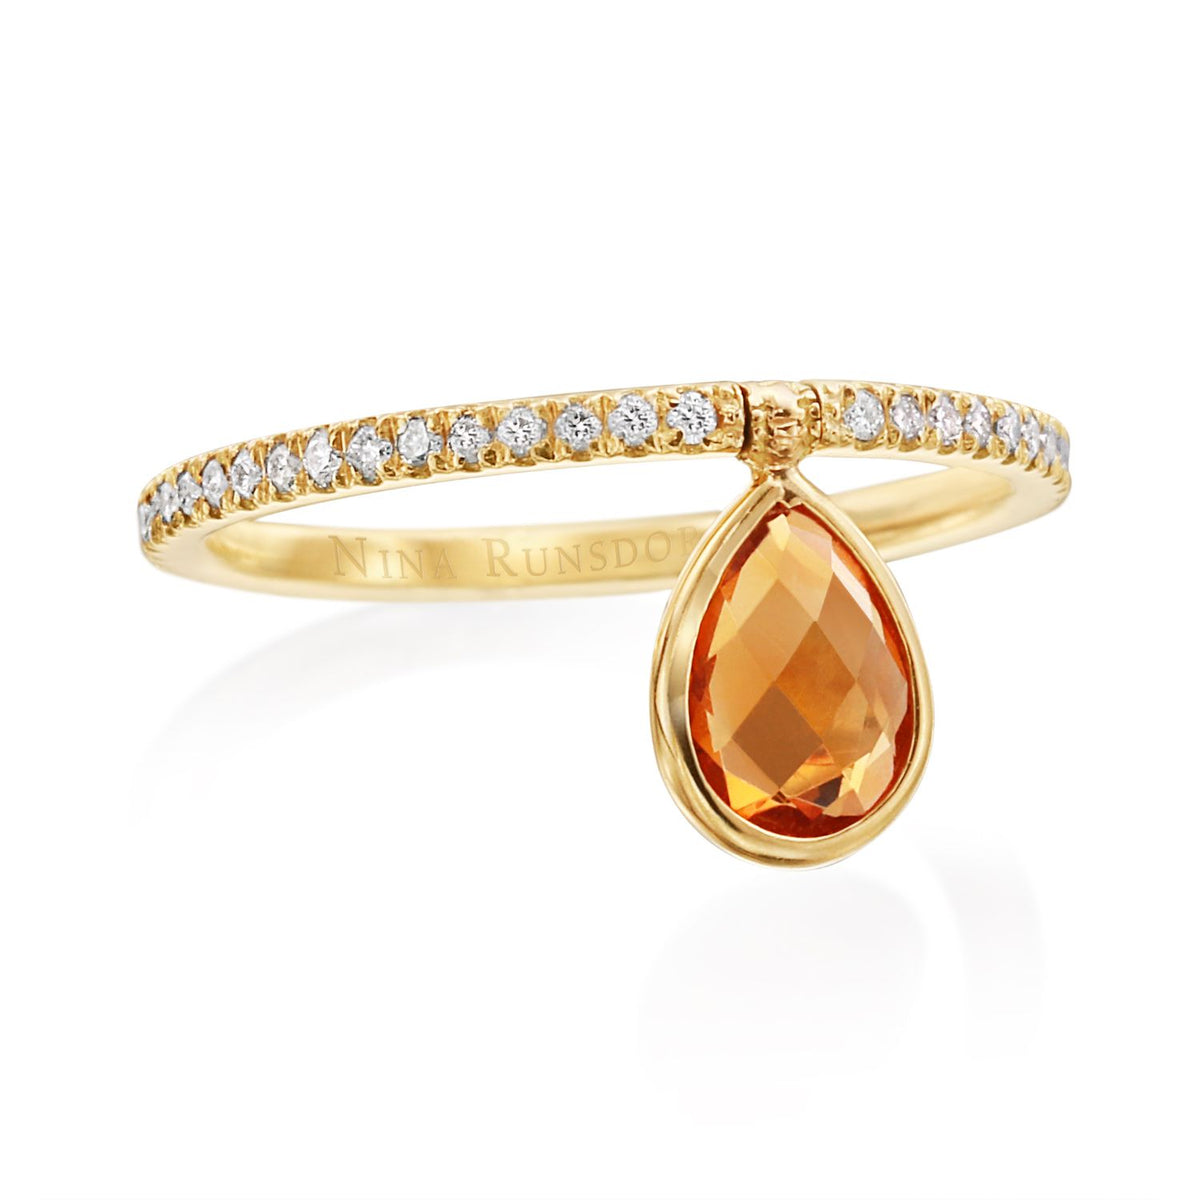 Mini Orange Garnet Flip Ring - Nina Runsdorf